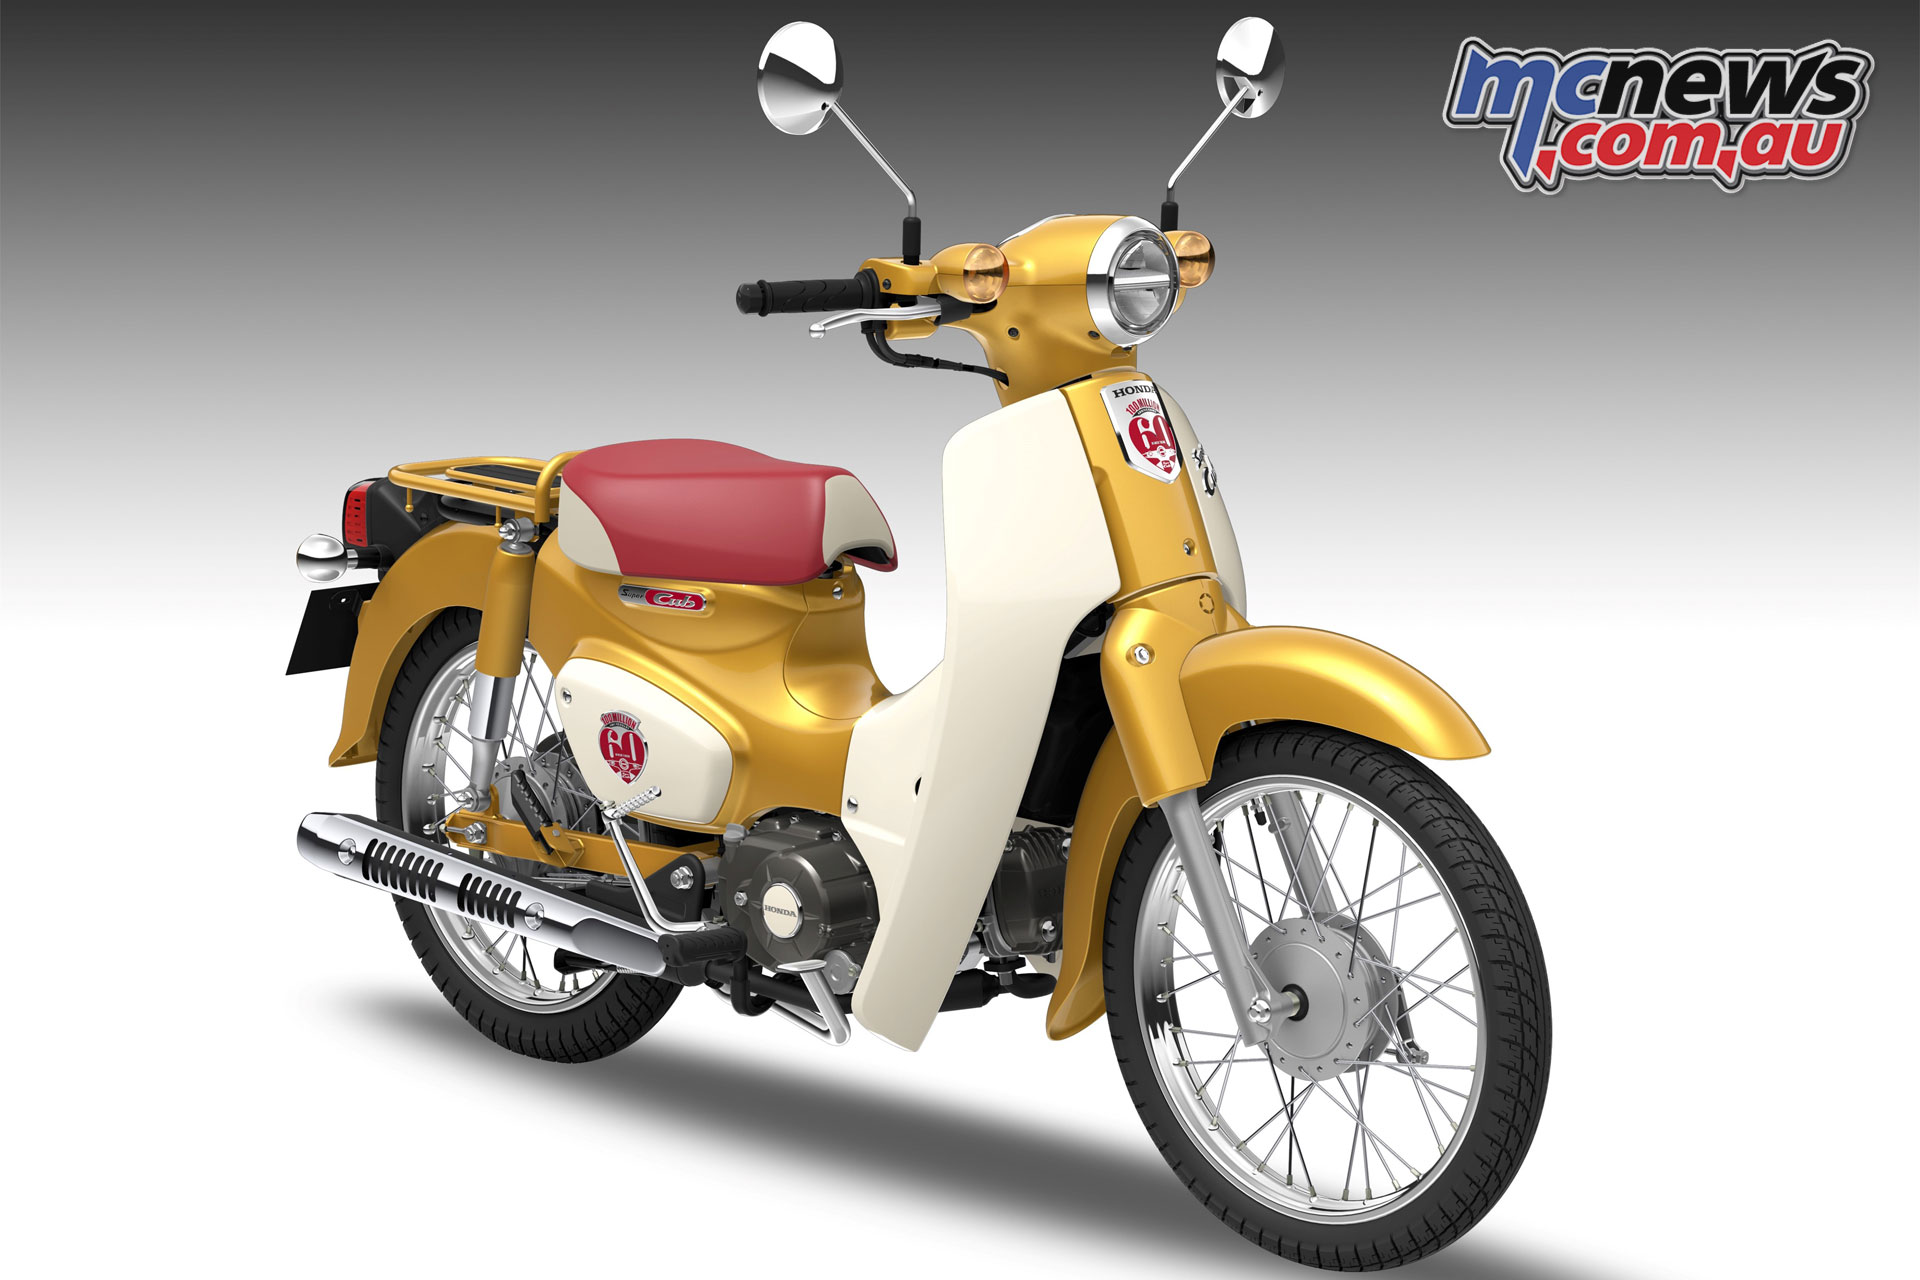 Honda Super Cub 110 Commemorative Edition Concept Motorcycle News Sport And Reviews